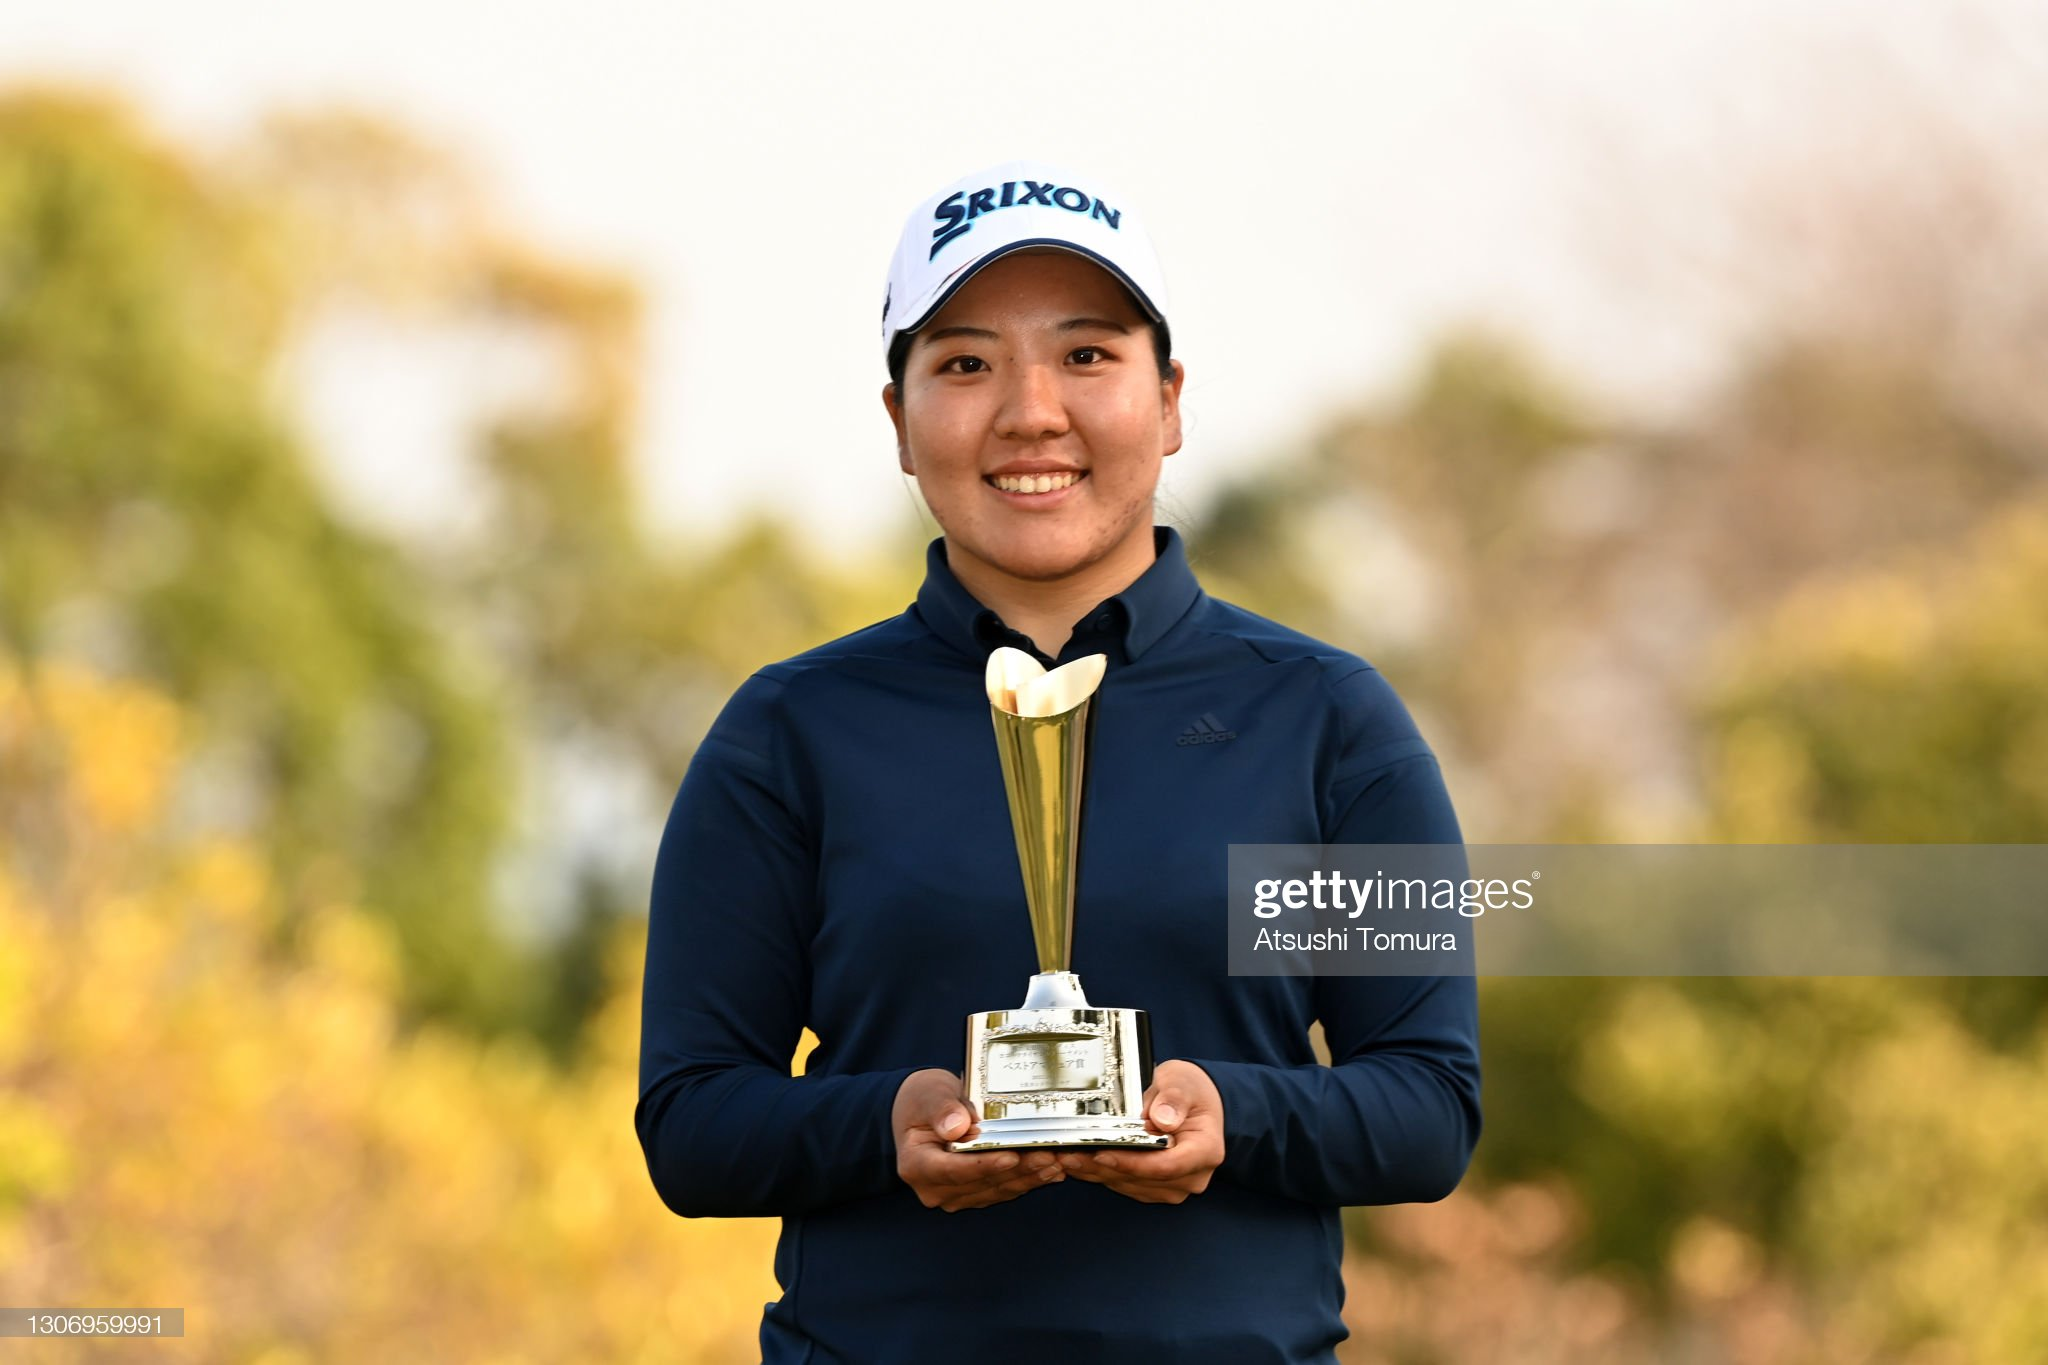 https://media.gettyimages.com/photos/low-amateur-yuka-nii-of-japan-poses-after-the-final-round-of-the-picture-id1306959991?s=2048x2048